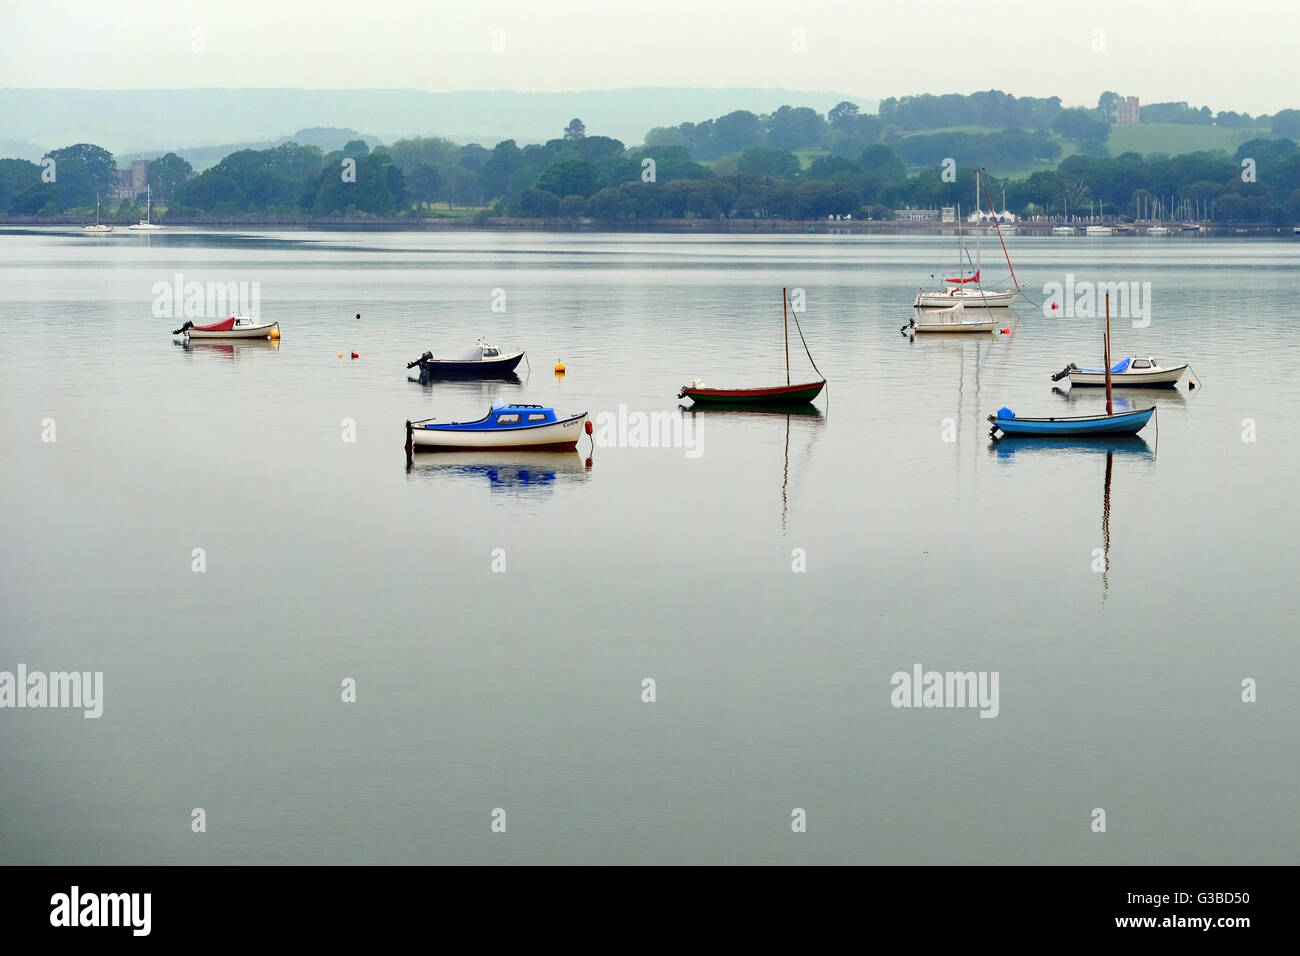 A calm River Exe, with several colourful sailing boats, and Powderham Castle in the distance. - Stock Image